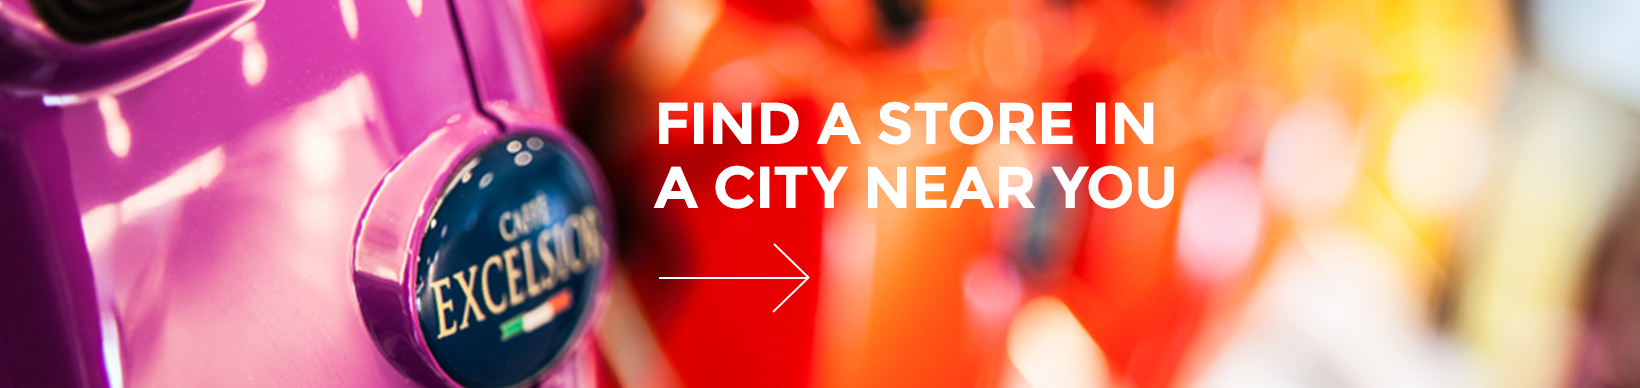 TFind a store in a city near you